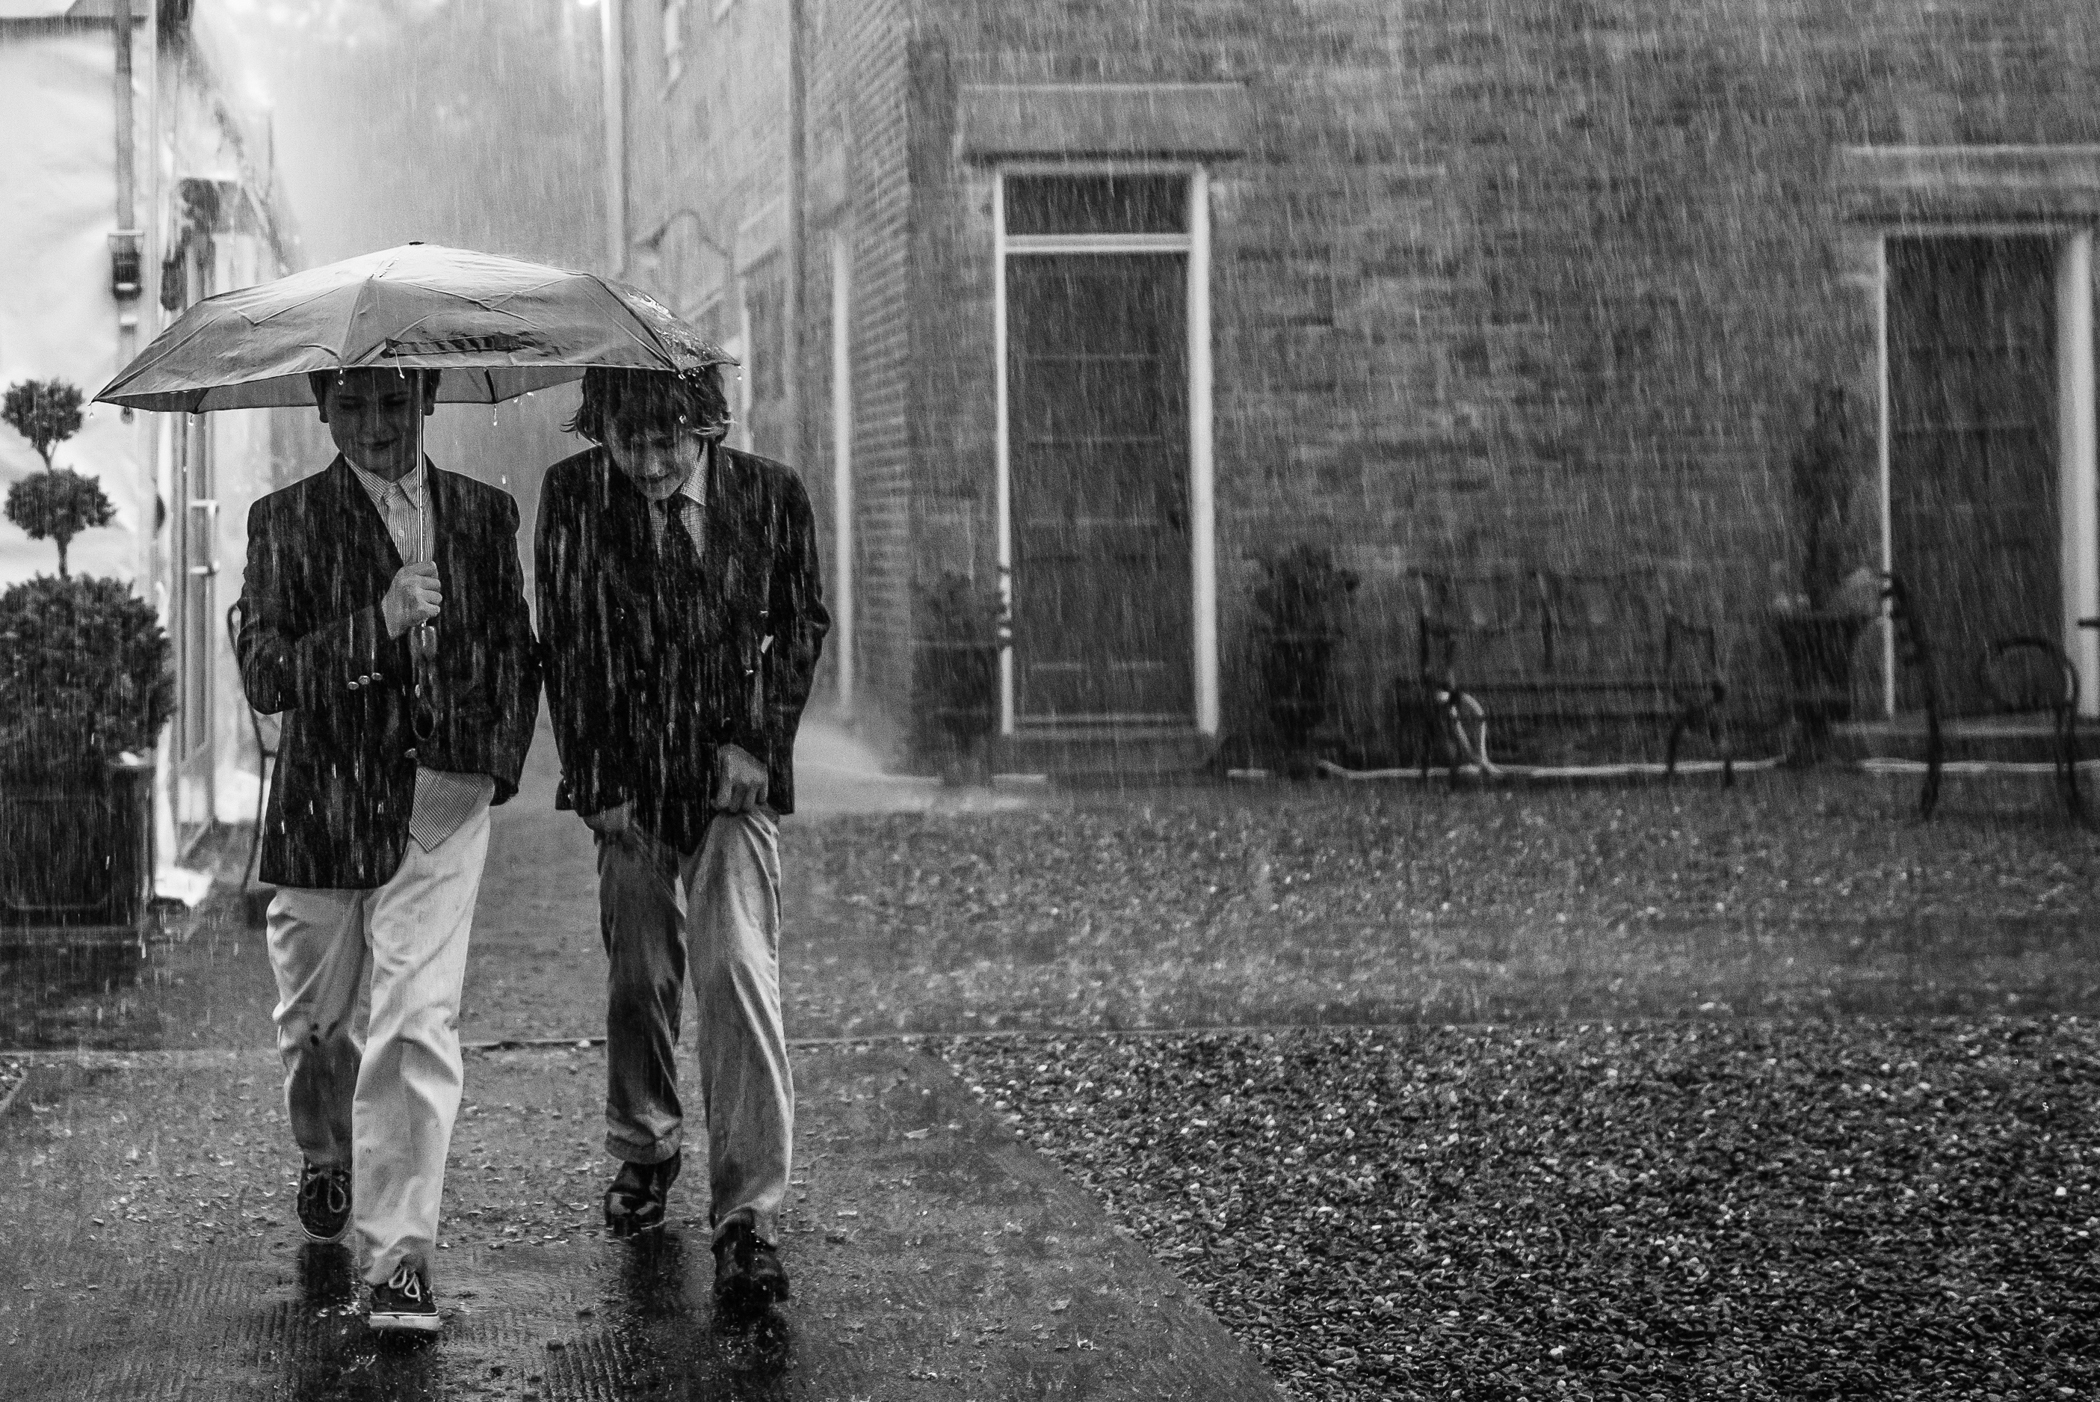 Stefy Hilmer Photography-pouring rain during wedding day.jpg